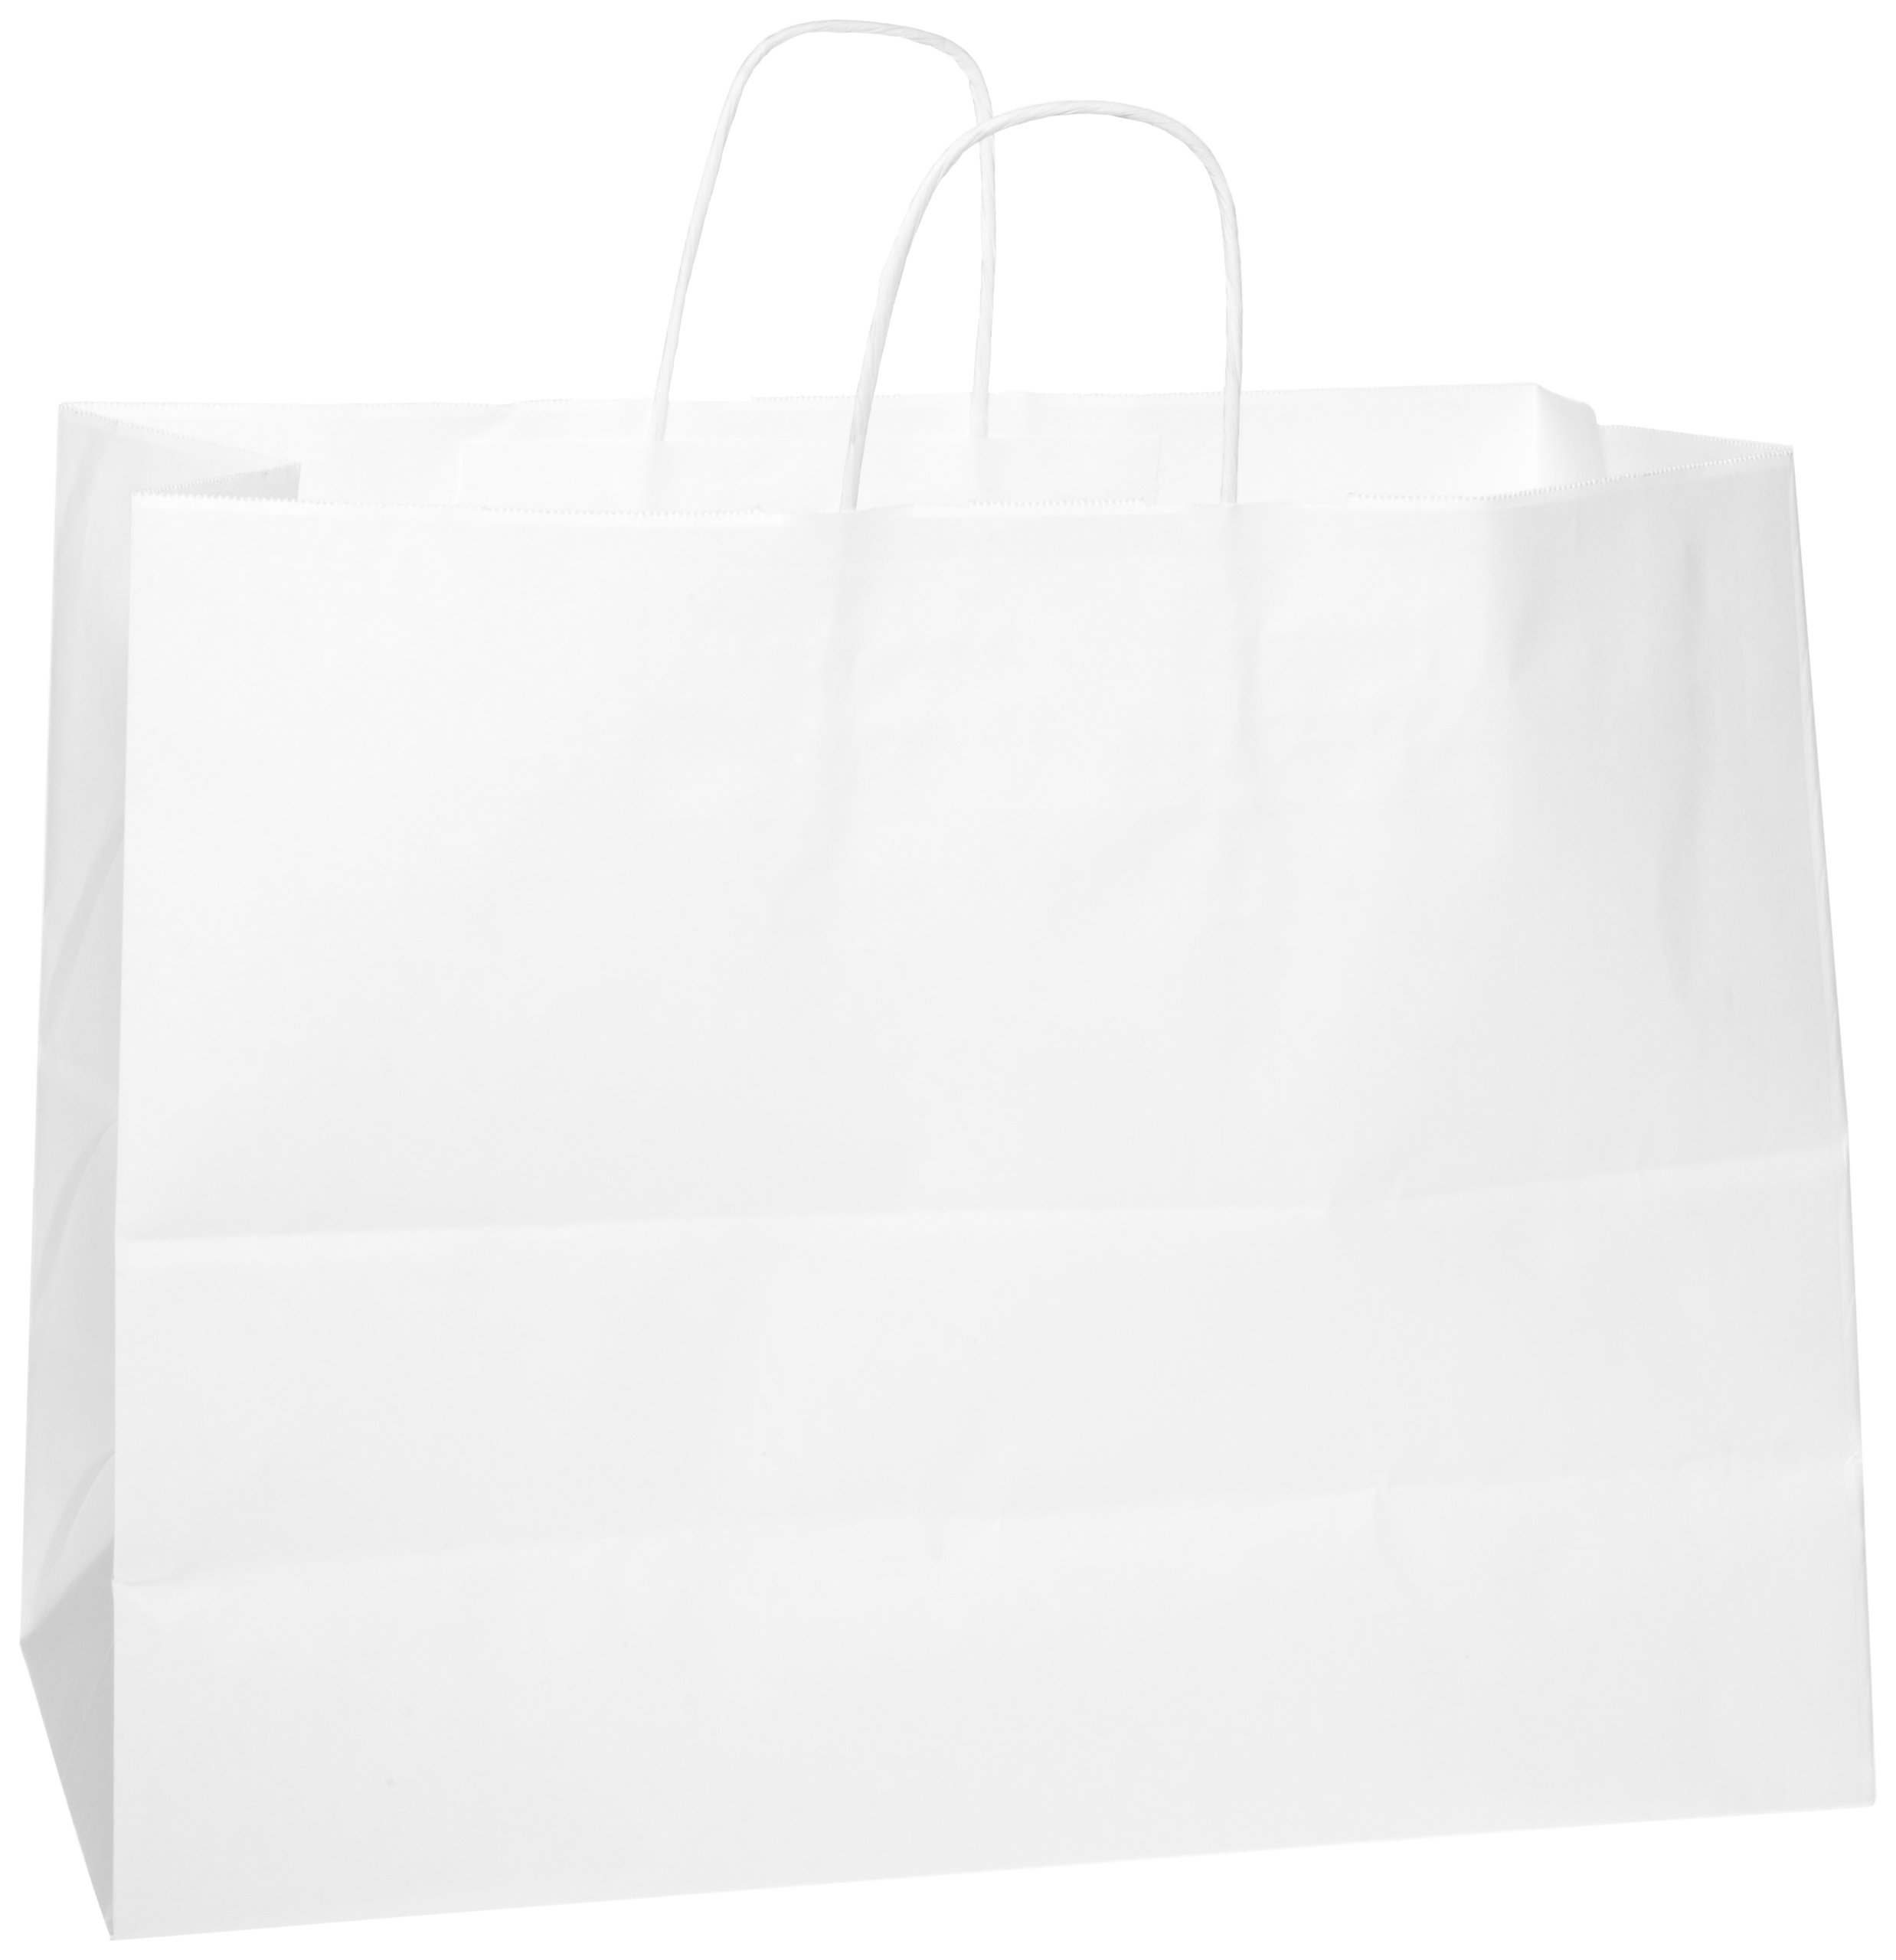 General WSHP16612C Paper Shopping Bag, 65lb White, Heavy-Duty 16 x 6 x 12, (Case of 250 bags) by Duro